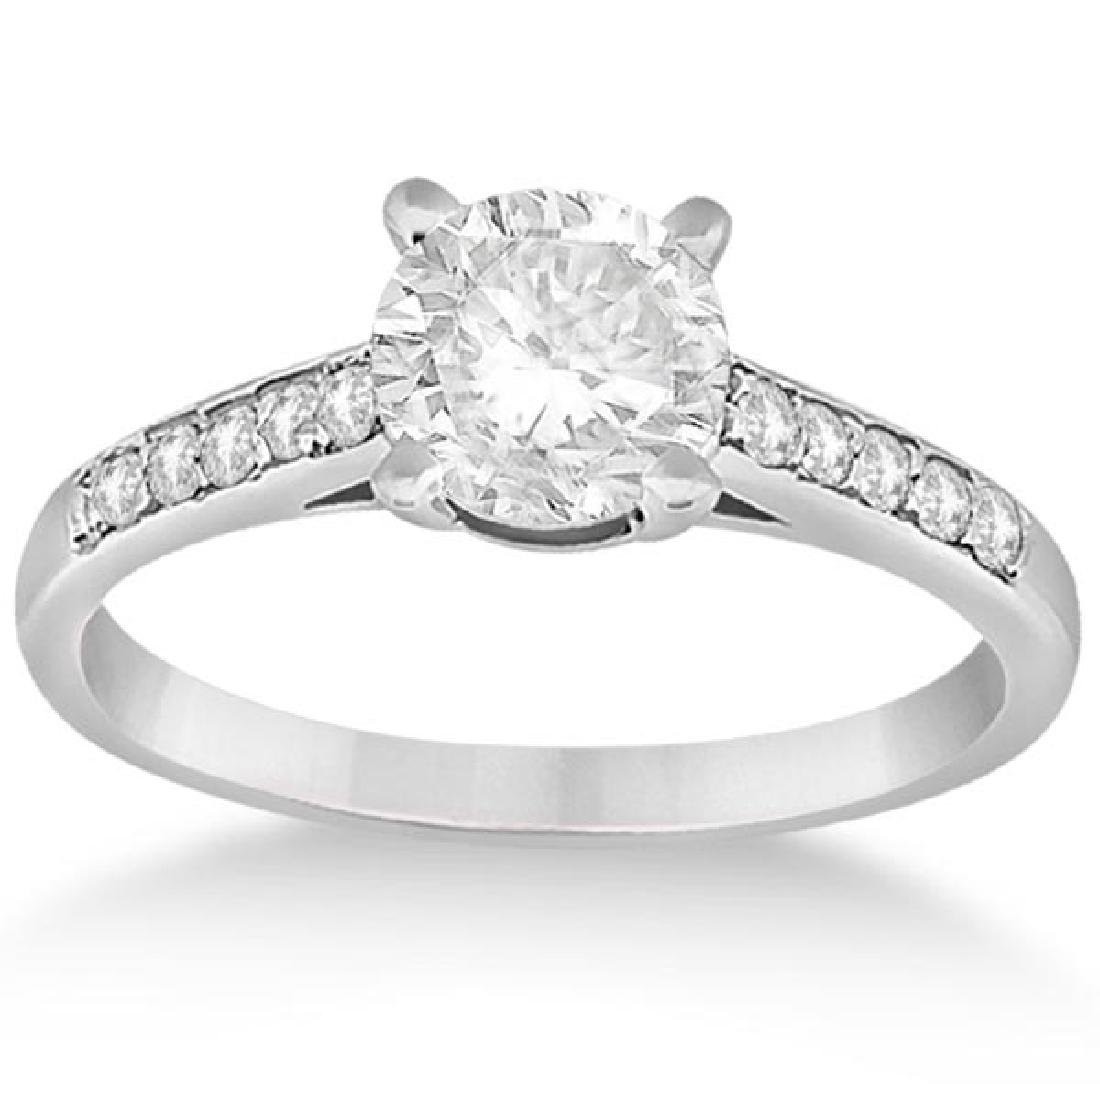 Cathedral Pave Diamond Engagement Ring 18k White Gold